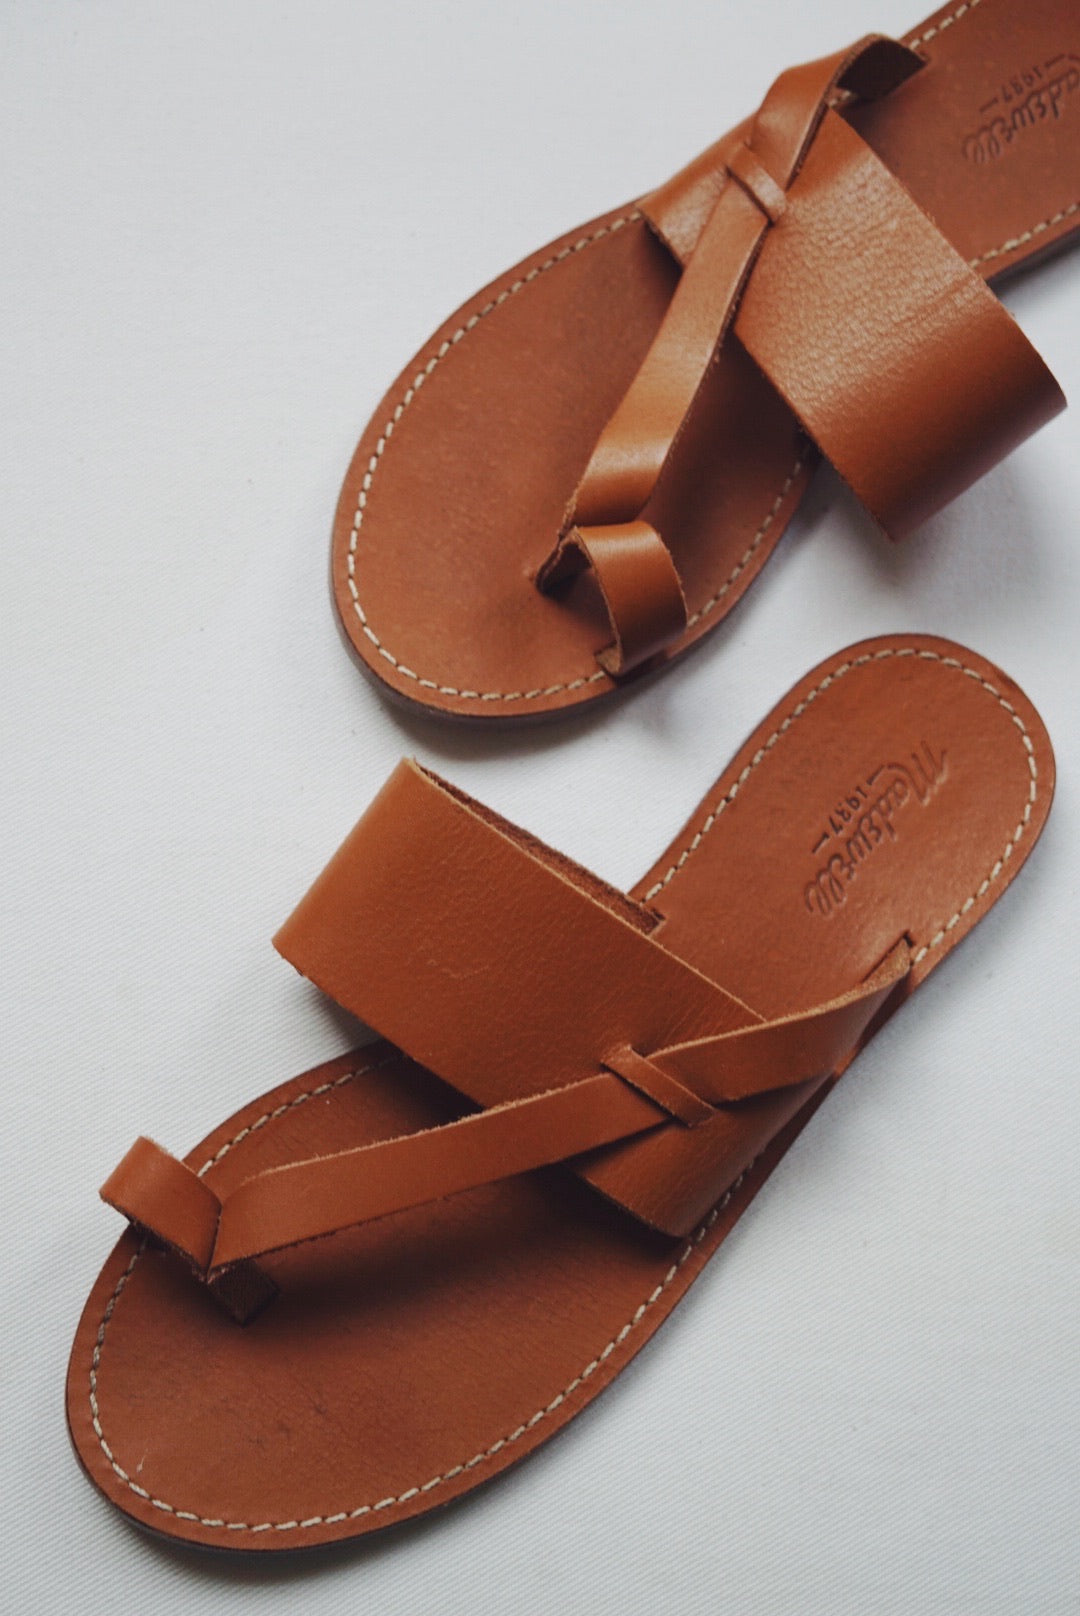 Madewell Leather Sandals